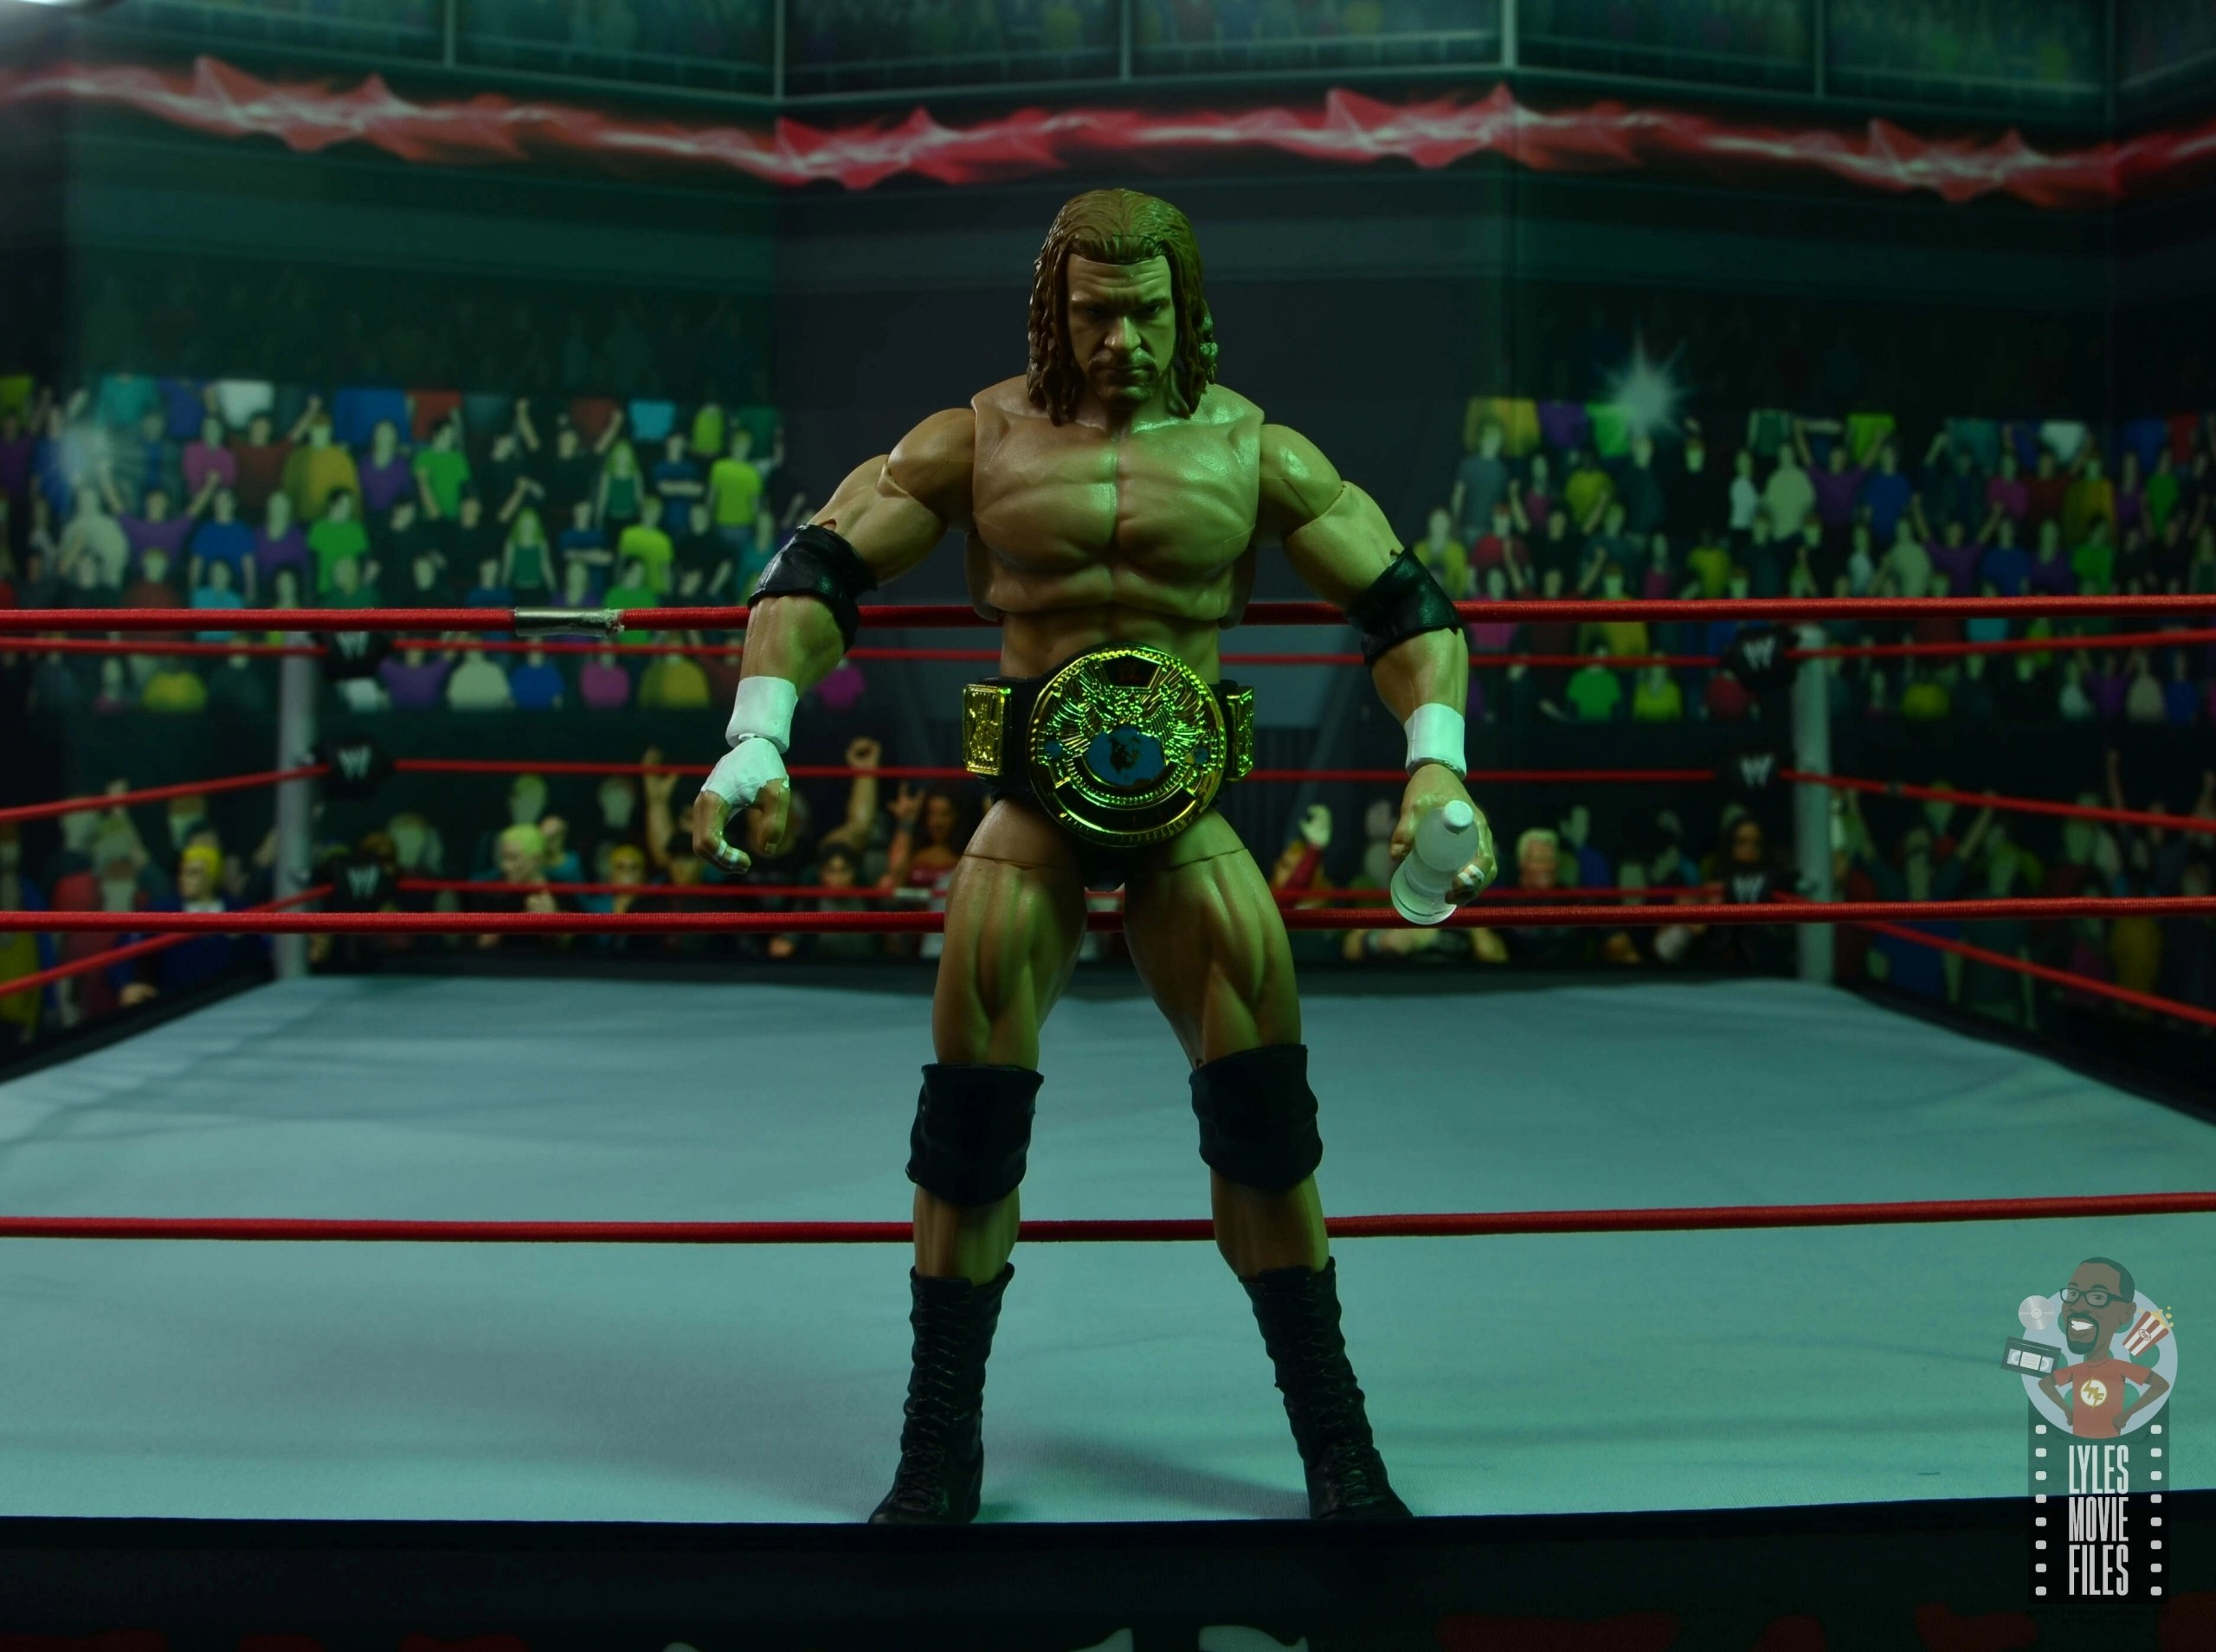 wwe ultimate edition triple h figure review lyles movie files wwe ultimate edition triple h figure